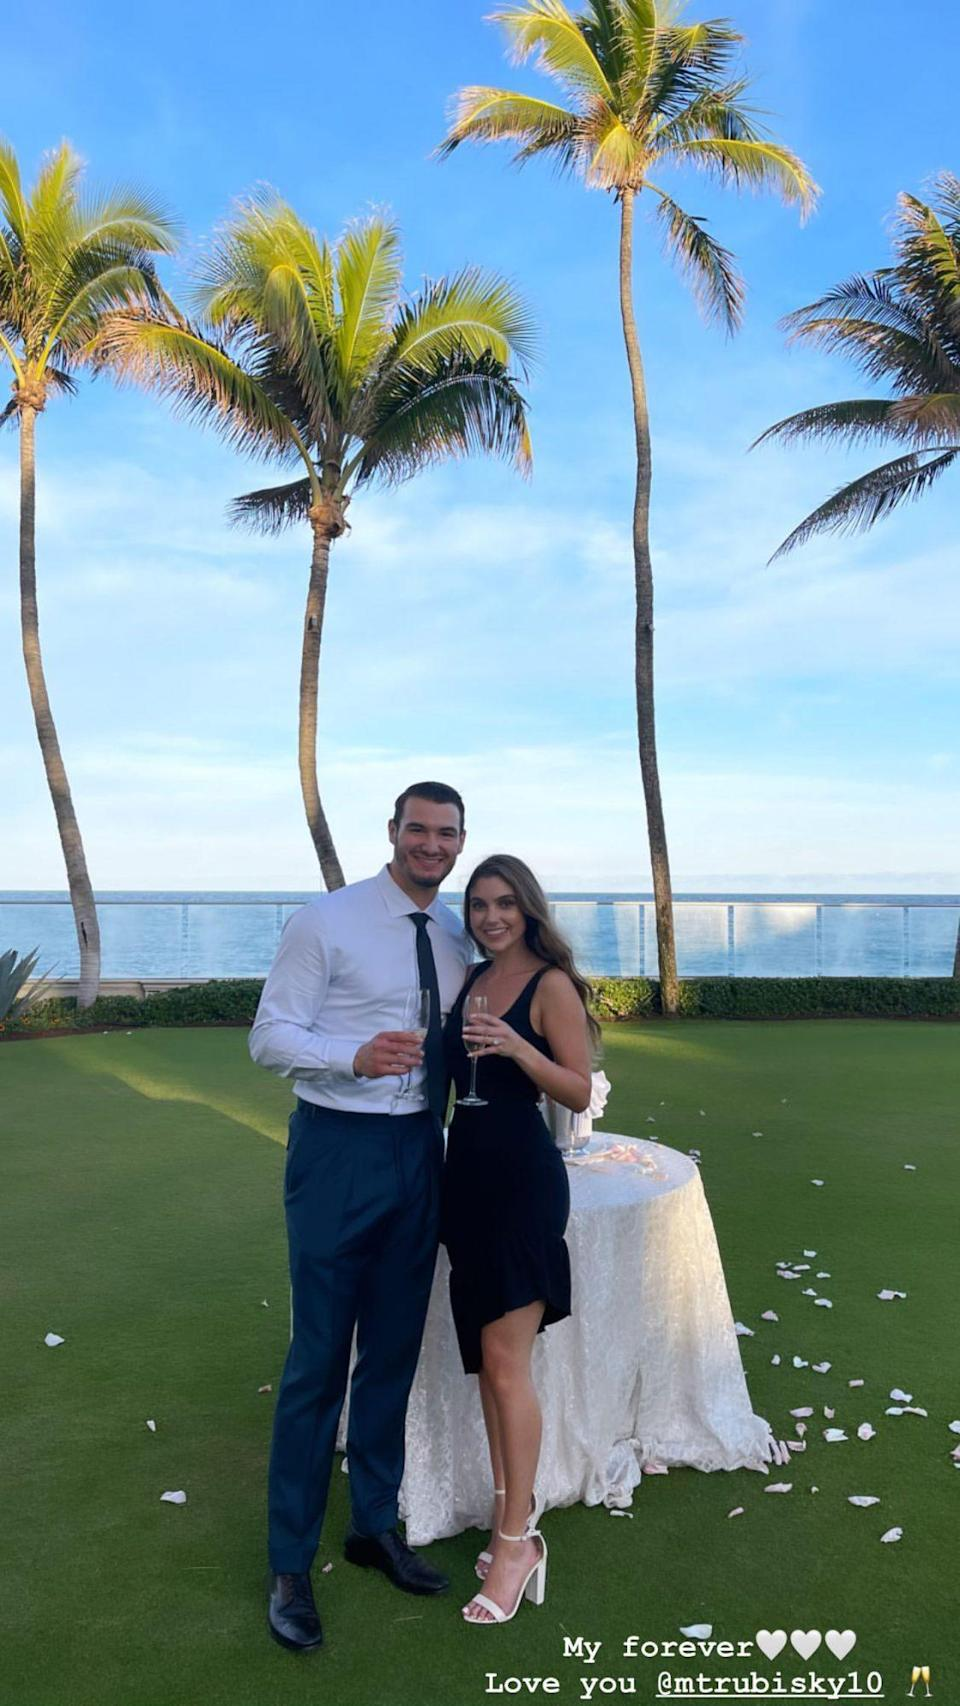 "<p>The Chicago Bears quarterback <a href=""https://people.com/sports/chicago-bears-mitch-trubisky-engaged-girlfriend/"" rel=""nofollow noopener"" target=""_blank"" data-ylk=""slk:popped the question"" class=""link rapid-noclick-resp"">popped the question</a> to girlfriend Gallagher, the private Pilates instructor revealed on <a href=""https://www.instagram.com/p/CKh5HvTrJIp/"" rel=""nofollow noopener"" target=""_blank"" data-ylk=""slk:Instagram"" class=""link rapid-noclick-resp"">Instagram</a> on Jan. 26.</p> <p>Gallagher, who also works in marketing, announced the exciting news with a series of photos and videos from the big day, along with a close-up shot of her glistening diamond ring.</p> <p>The athlete popped the question at The Breakers in Palm Beach, a luxury resort in Florida.</p> <p>""Fiancé 💍 Can't wait to spend forever with my soulmate,"" Gallagher captioned her post.</p>"